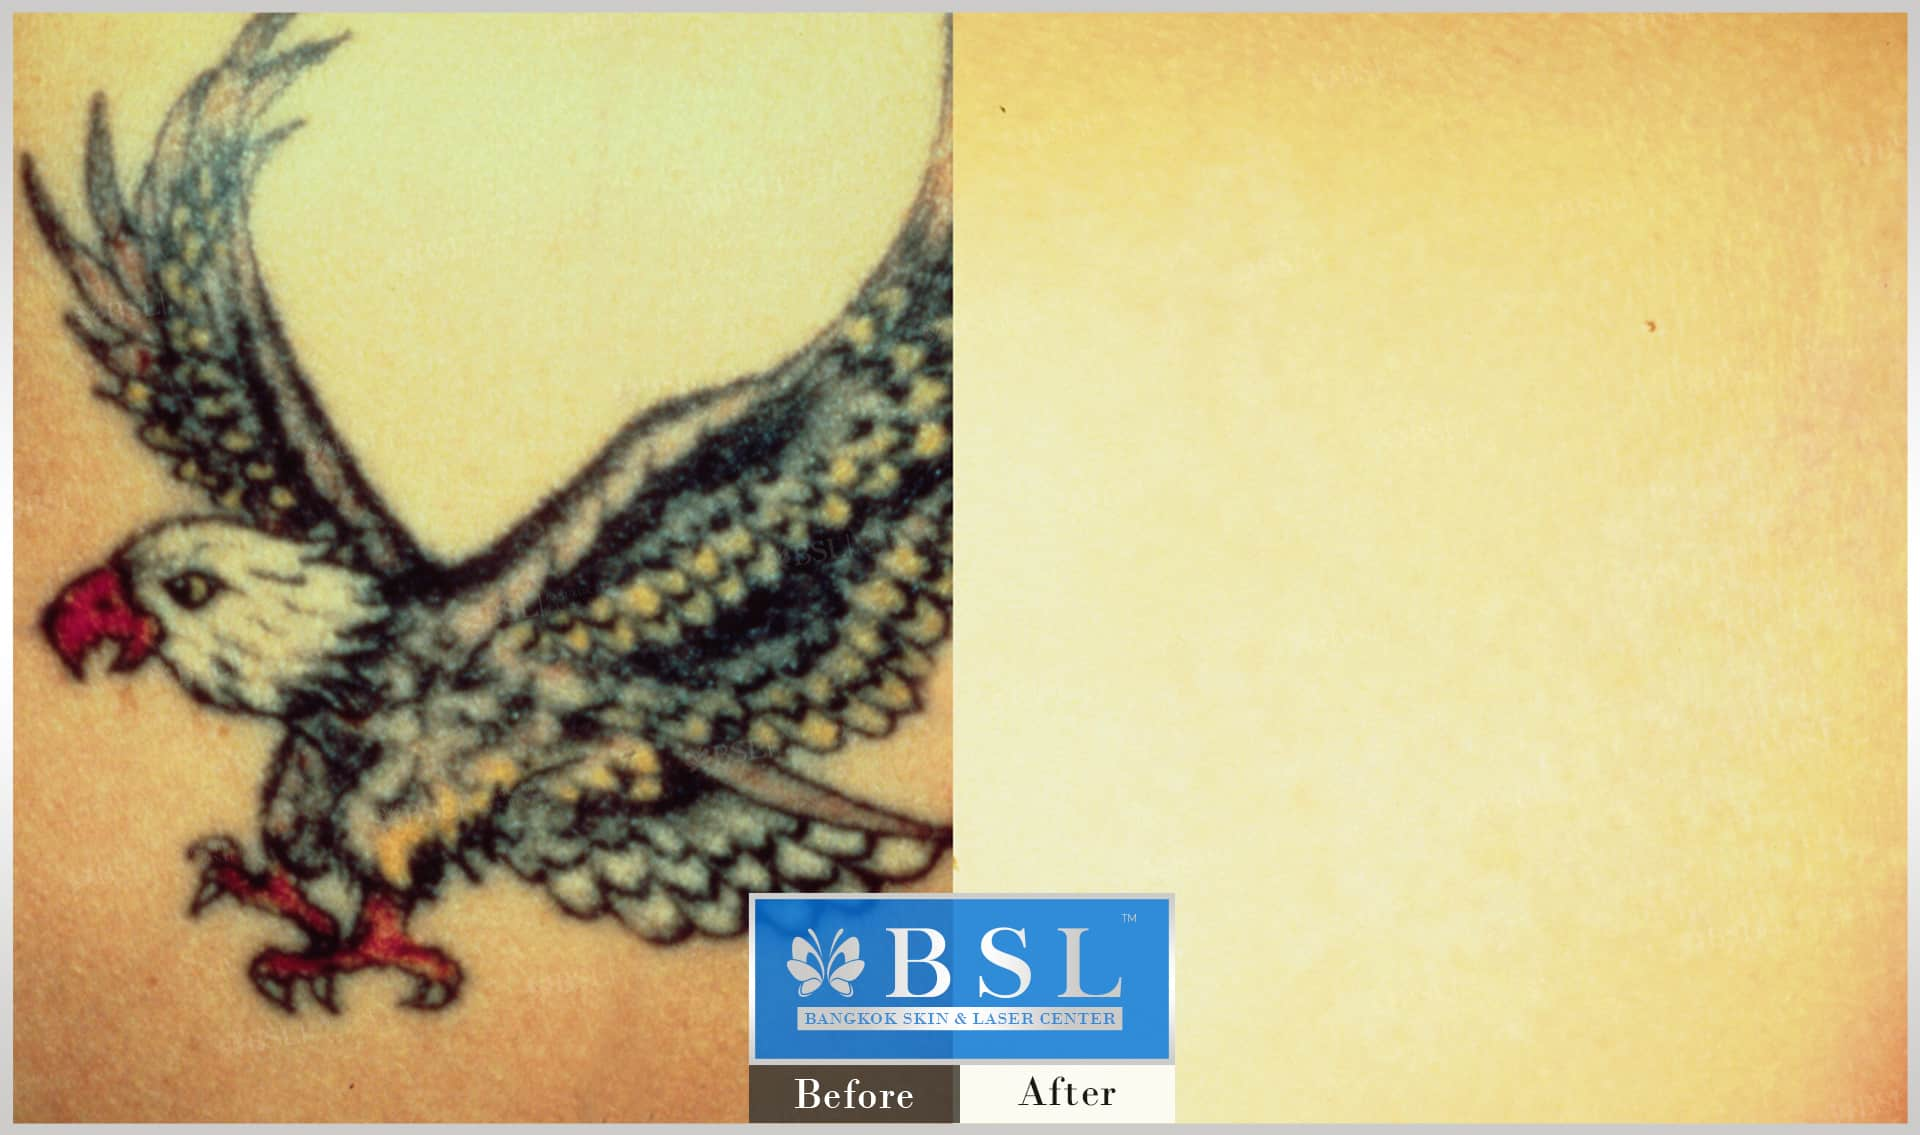 before-after-results-remove-tattoos-005